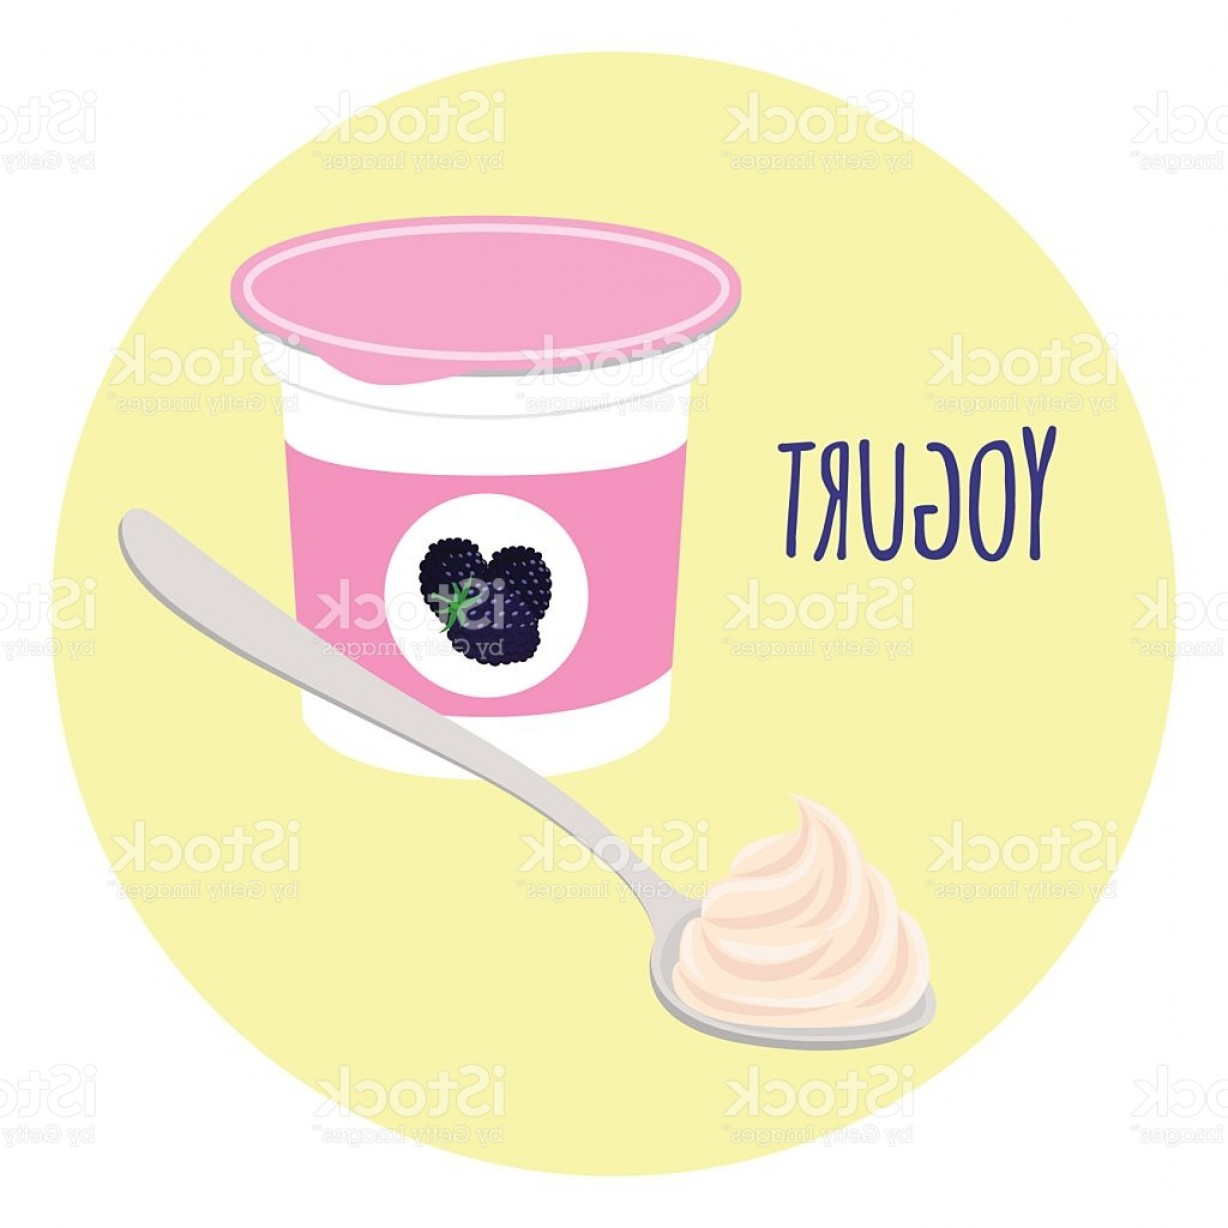 Yogurt Vector: Blackberry Yogurt Healthy Milk Product In Plastic Container Flat Style Gm